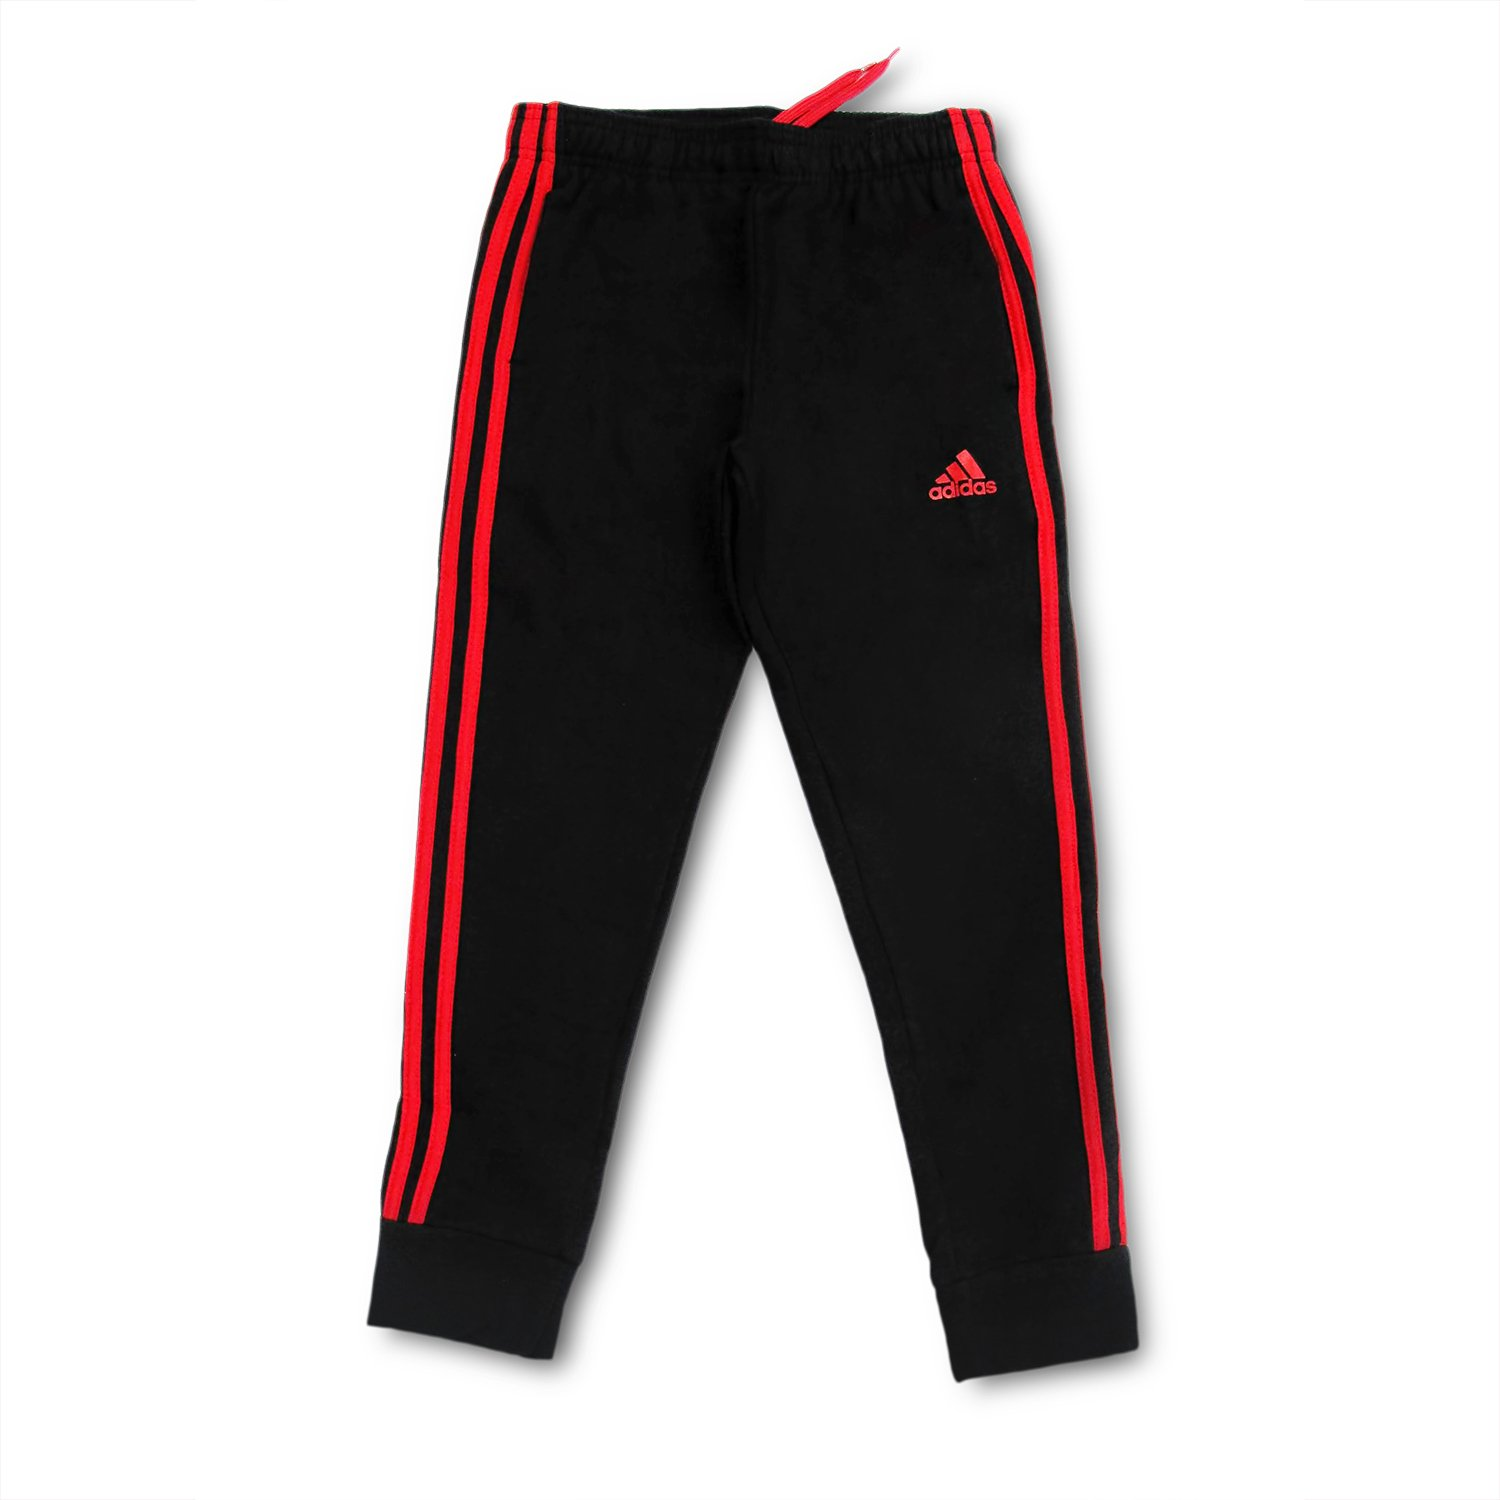 Outerstuff adidas Youth Fleece Collection (Youth Xlarge 18/20, Tapered Hem Sweatpants, Black/Scarlet)